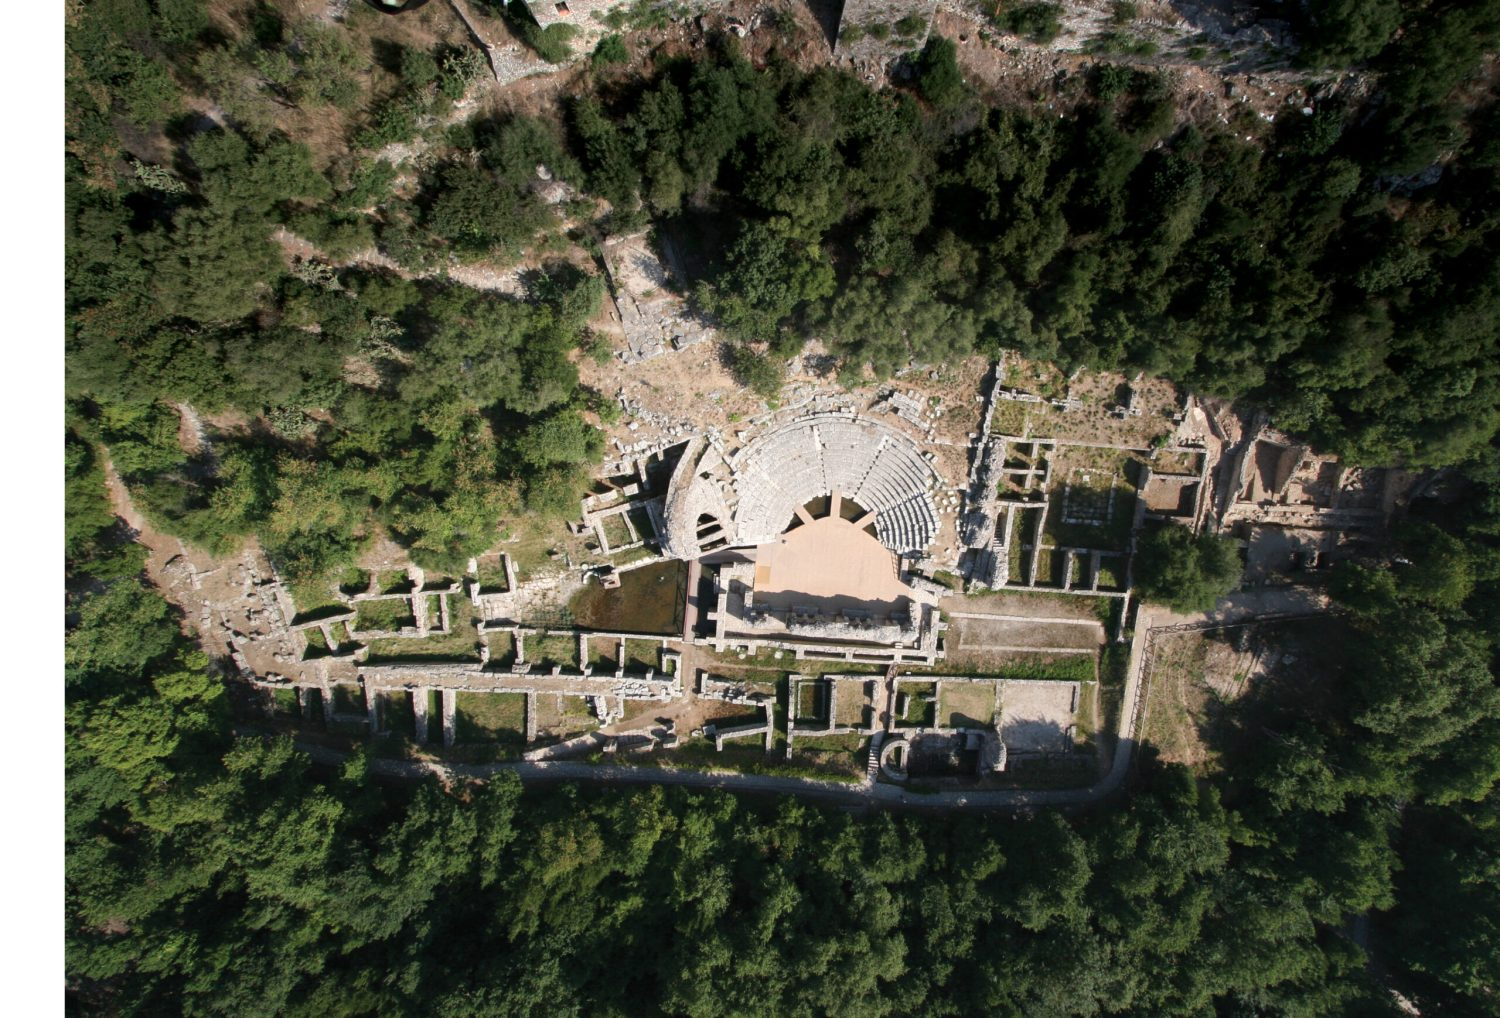 BELOW Aerial photograph of the W Courtyard and Theatre at Butrint. A shrine of Asklepios is visible just beyond the theatre, at the point where the seating terminates at the entrance. The compitum, round altar and pedestal of Aulus Granius, honorific bench, and water basin can be made out directly beyond the shrine, where standing water is visible in the photograph.